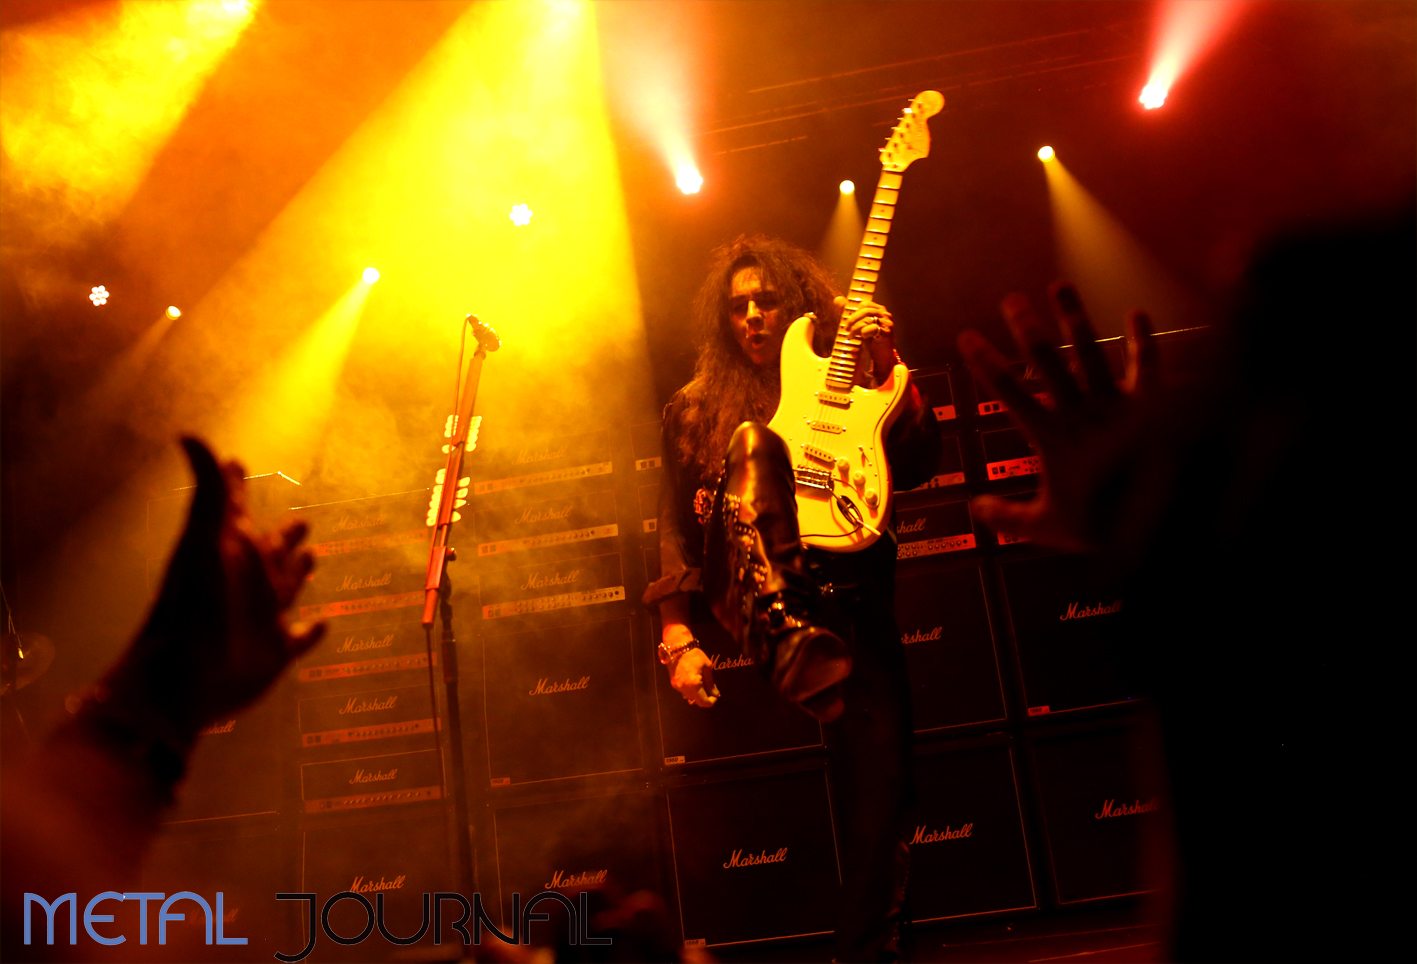 yngwie malmsteen - santander 2018 metal journal pic 4